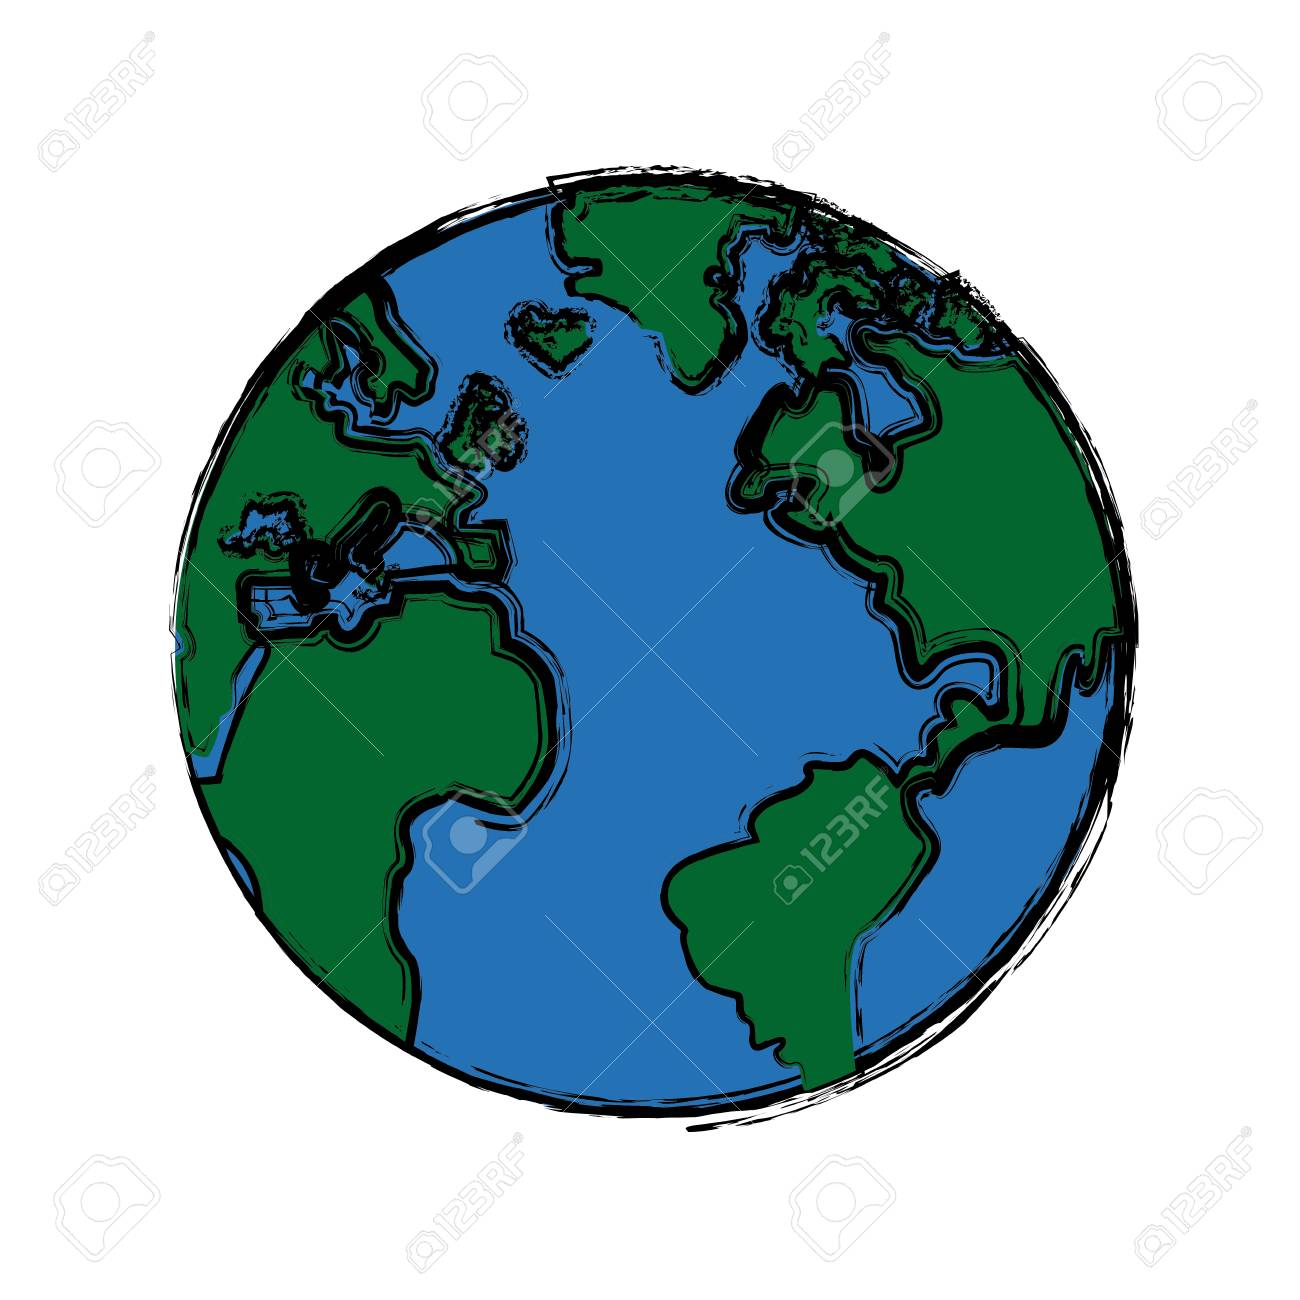 Global world earth map round vector illustration royalty free global world earth map round vector illustration stock vector 80915552 gumiabroncs Images